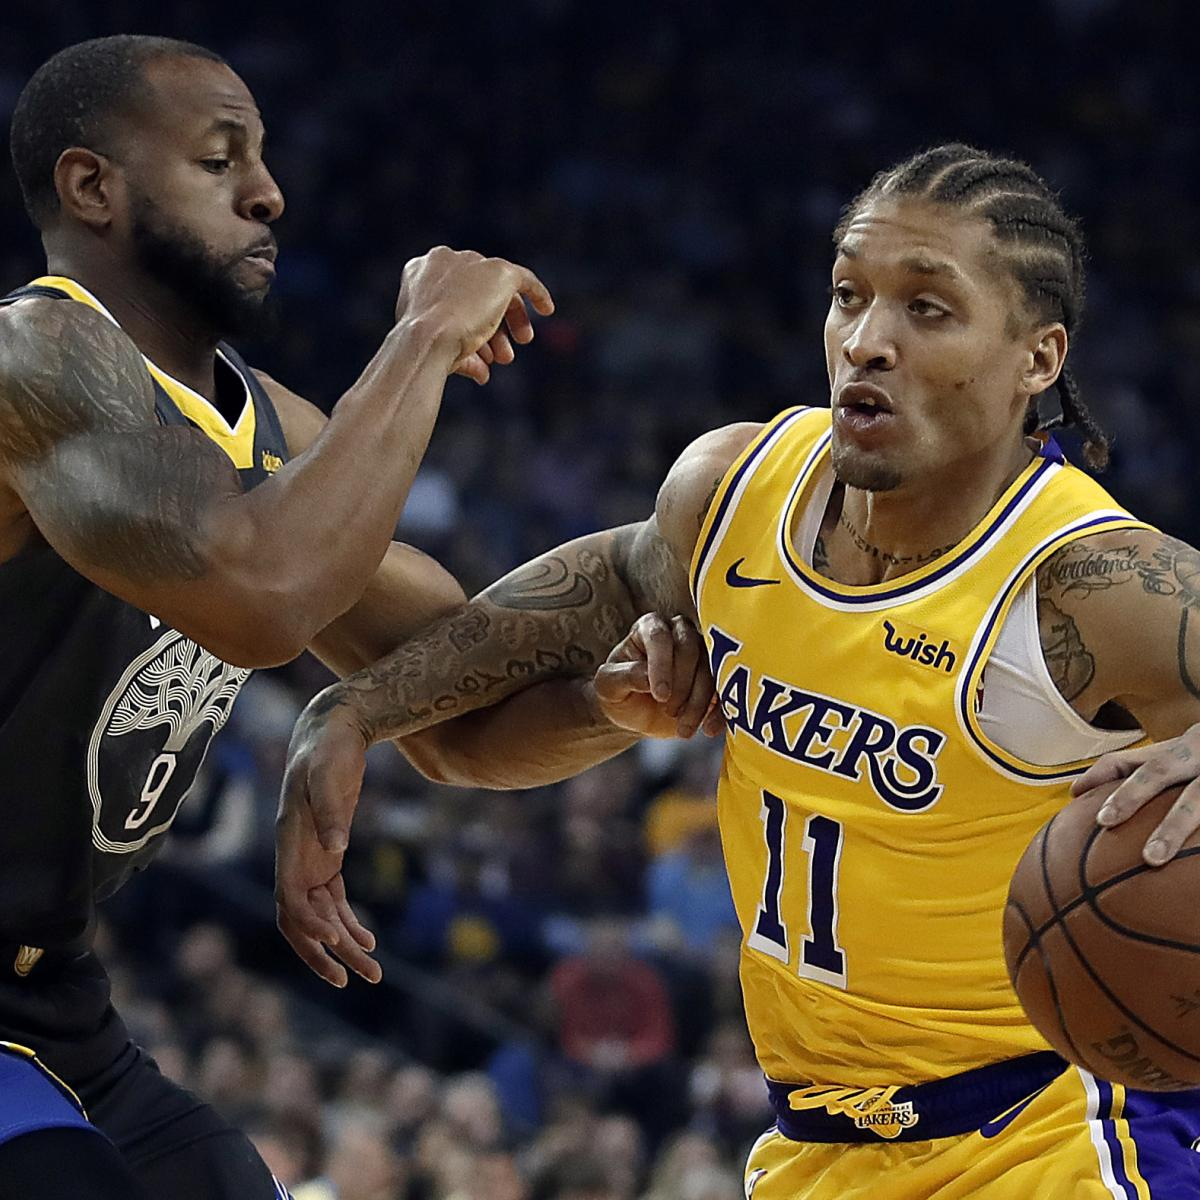 Mlb Rumors Analyzing All The Latest Whispers News And: Lakers Rumors: Examining Trade Whispers Surrounding Los